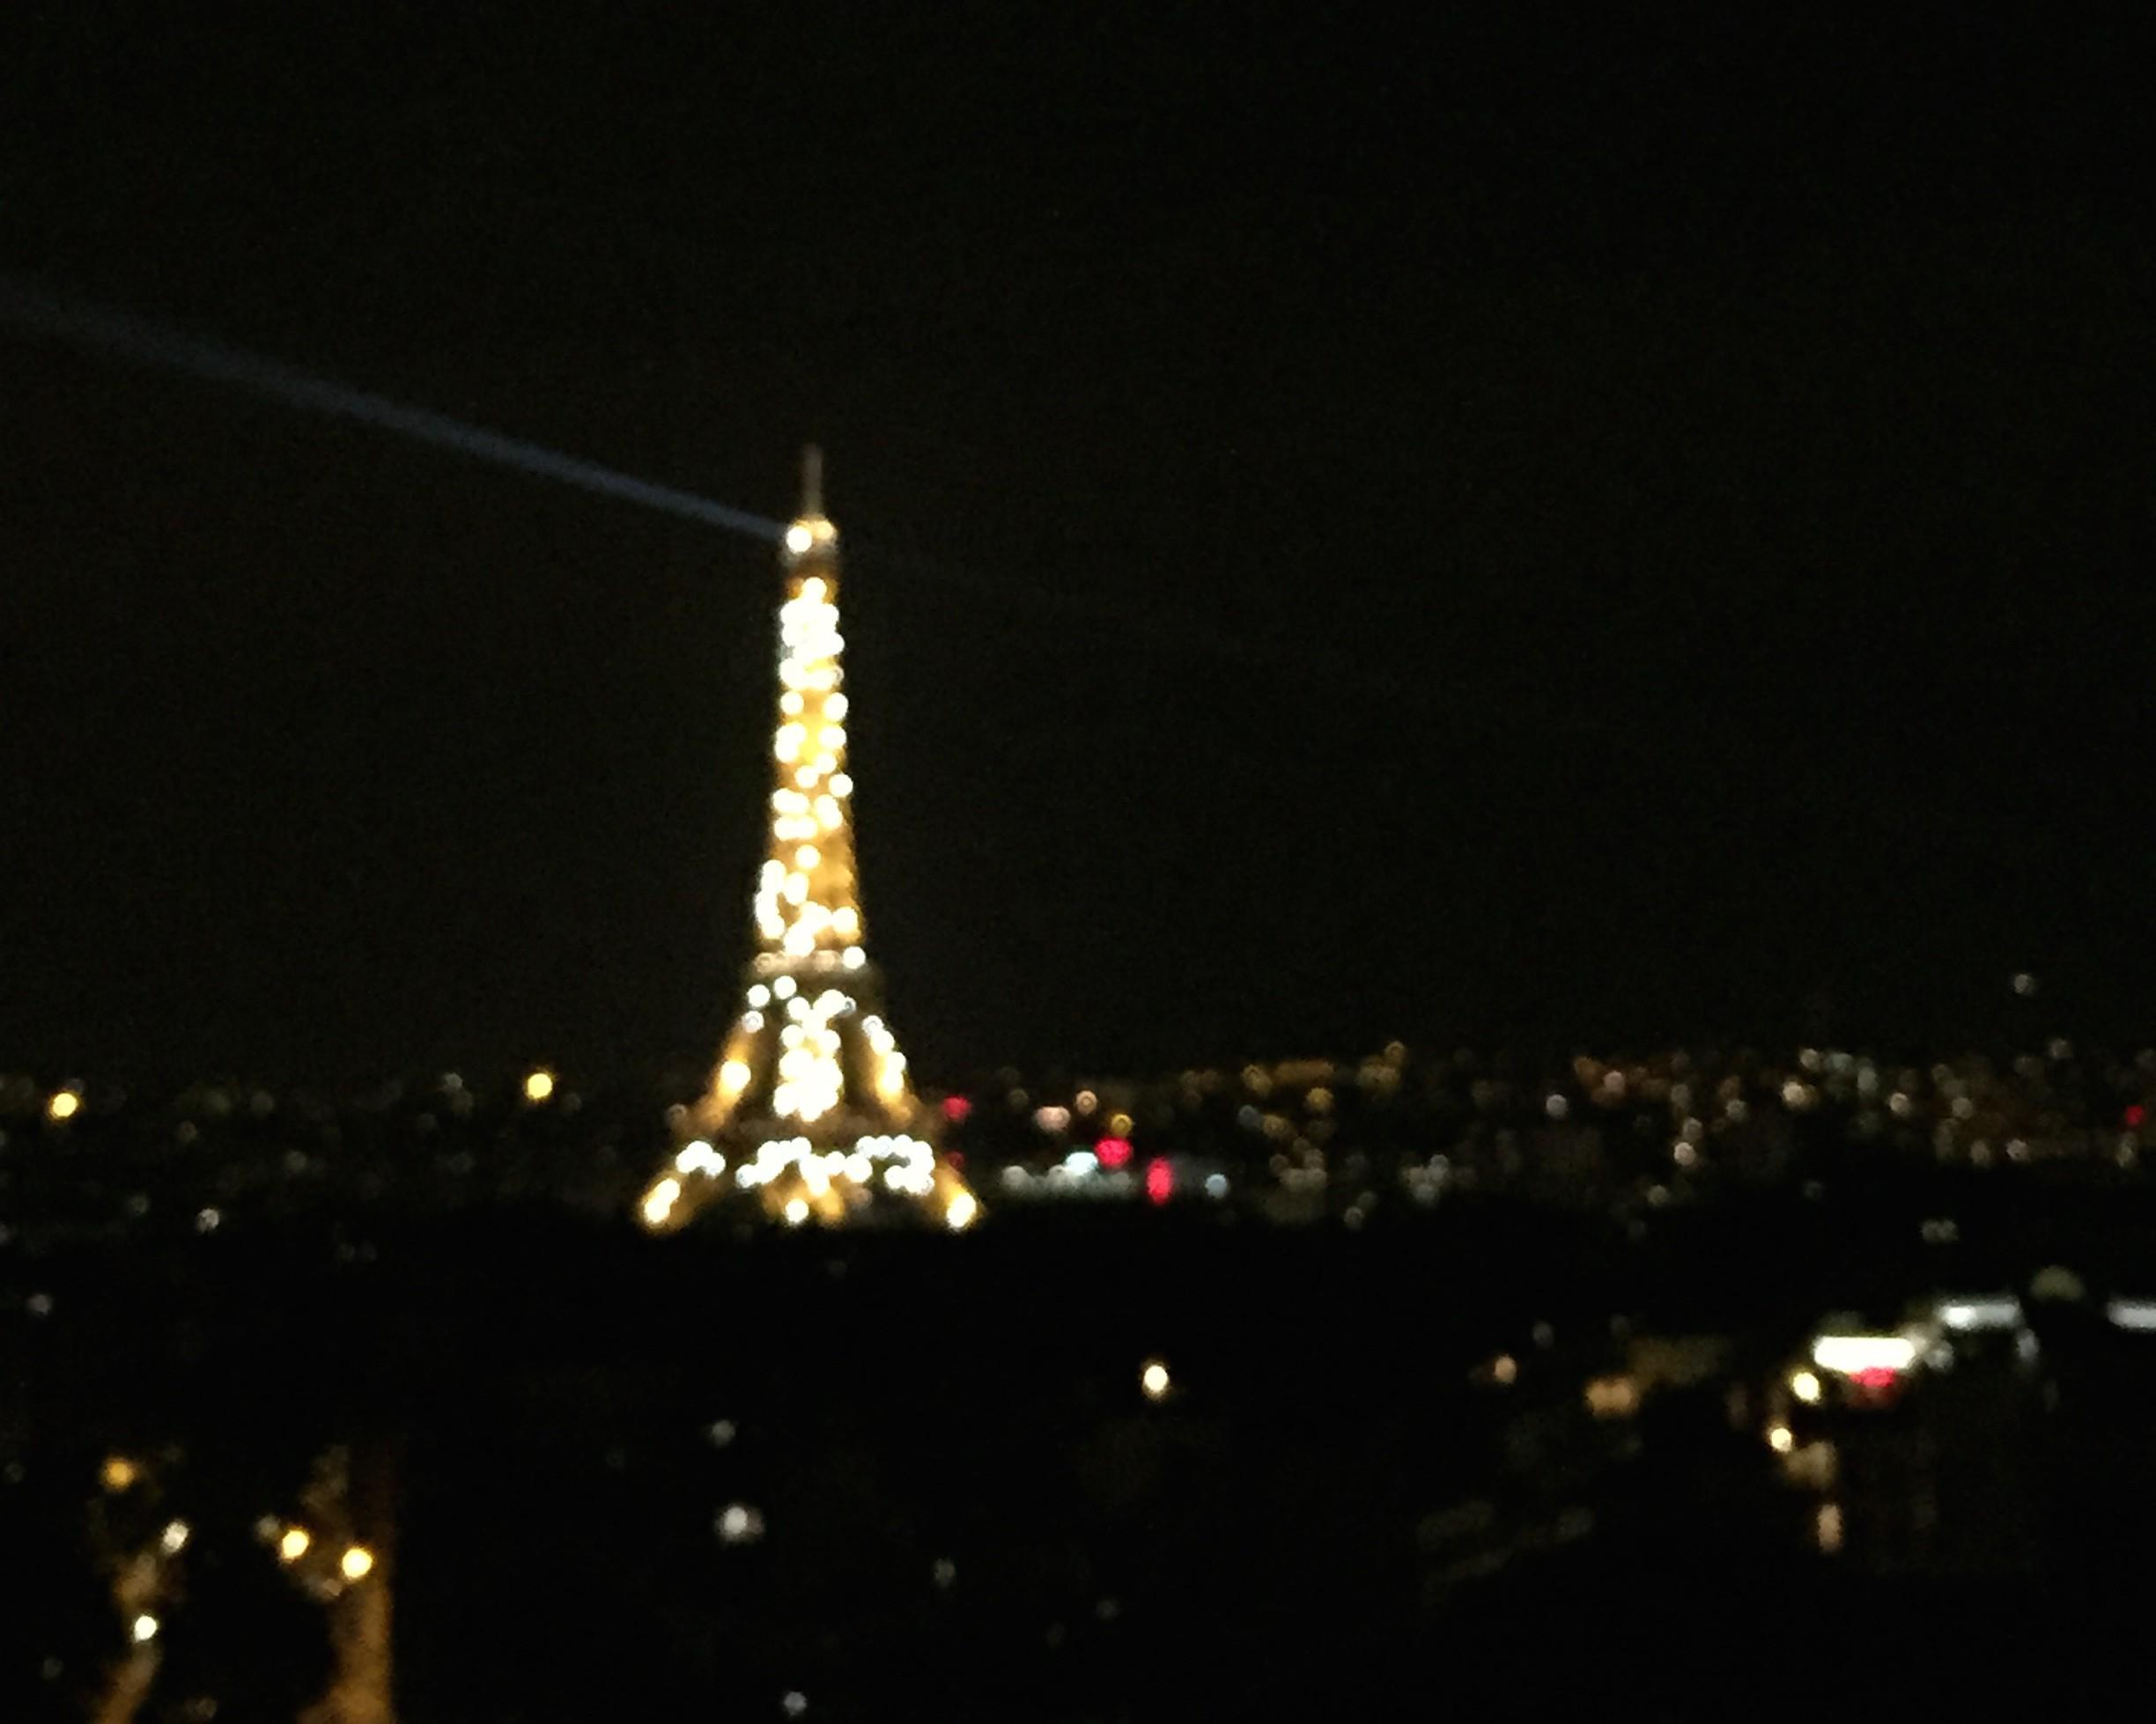 The Eiffel Tower lights up in Paris when the sky turns dark.